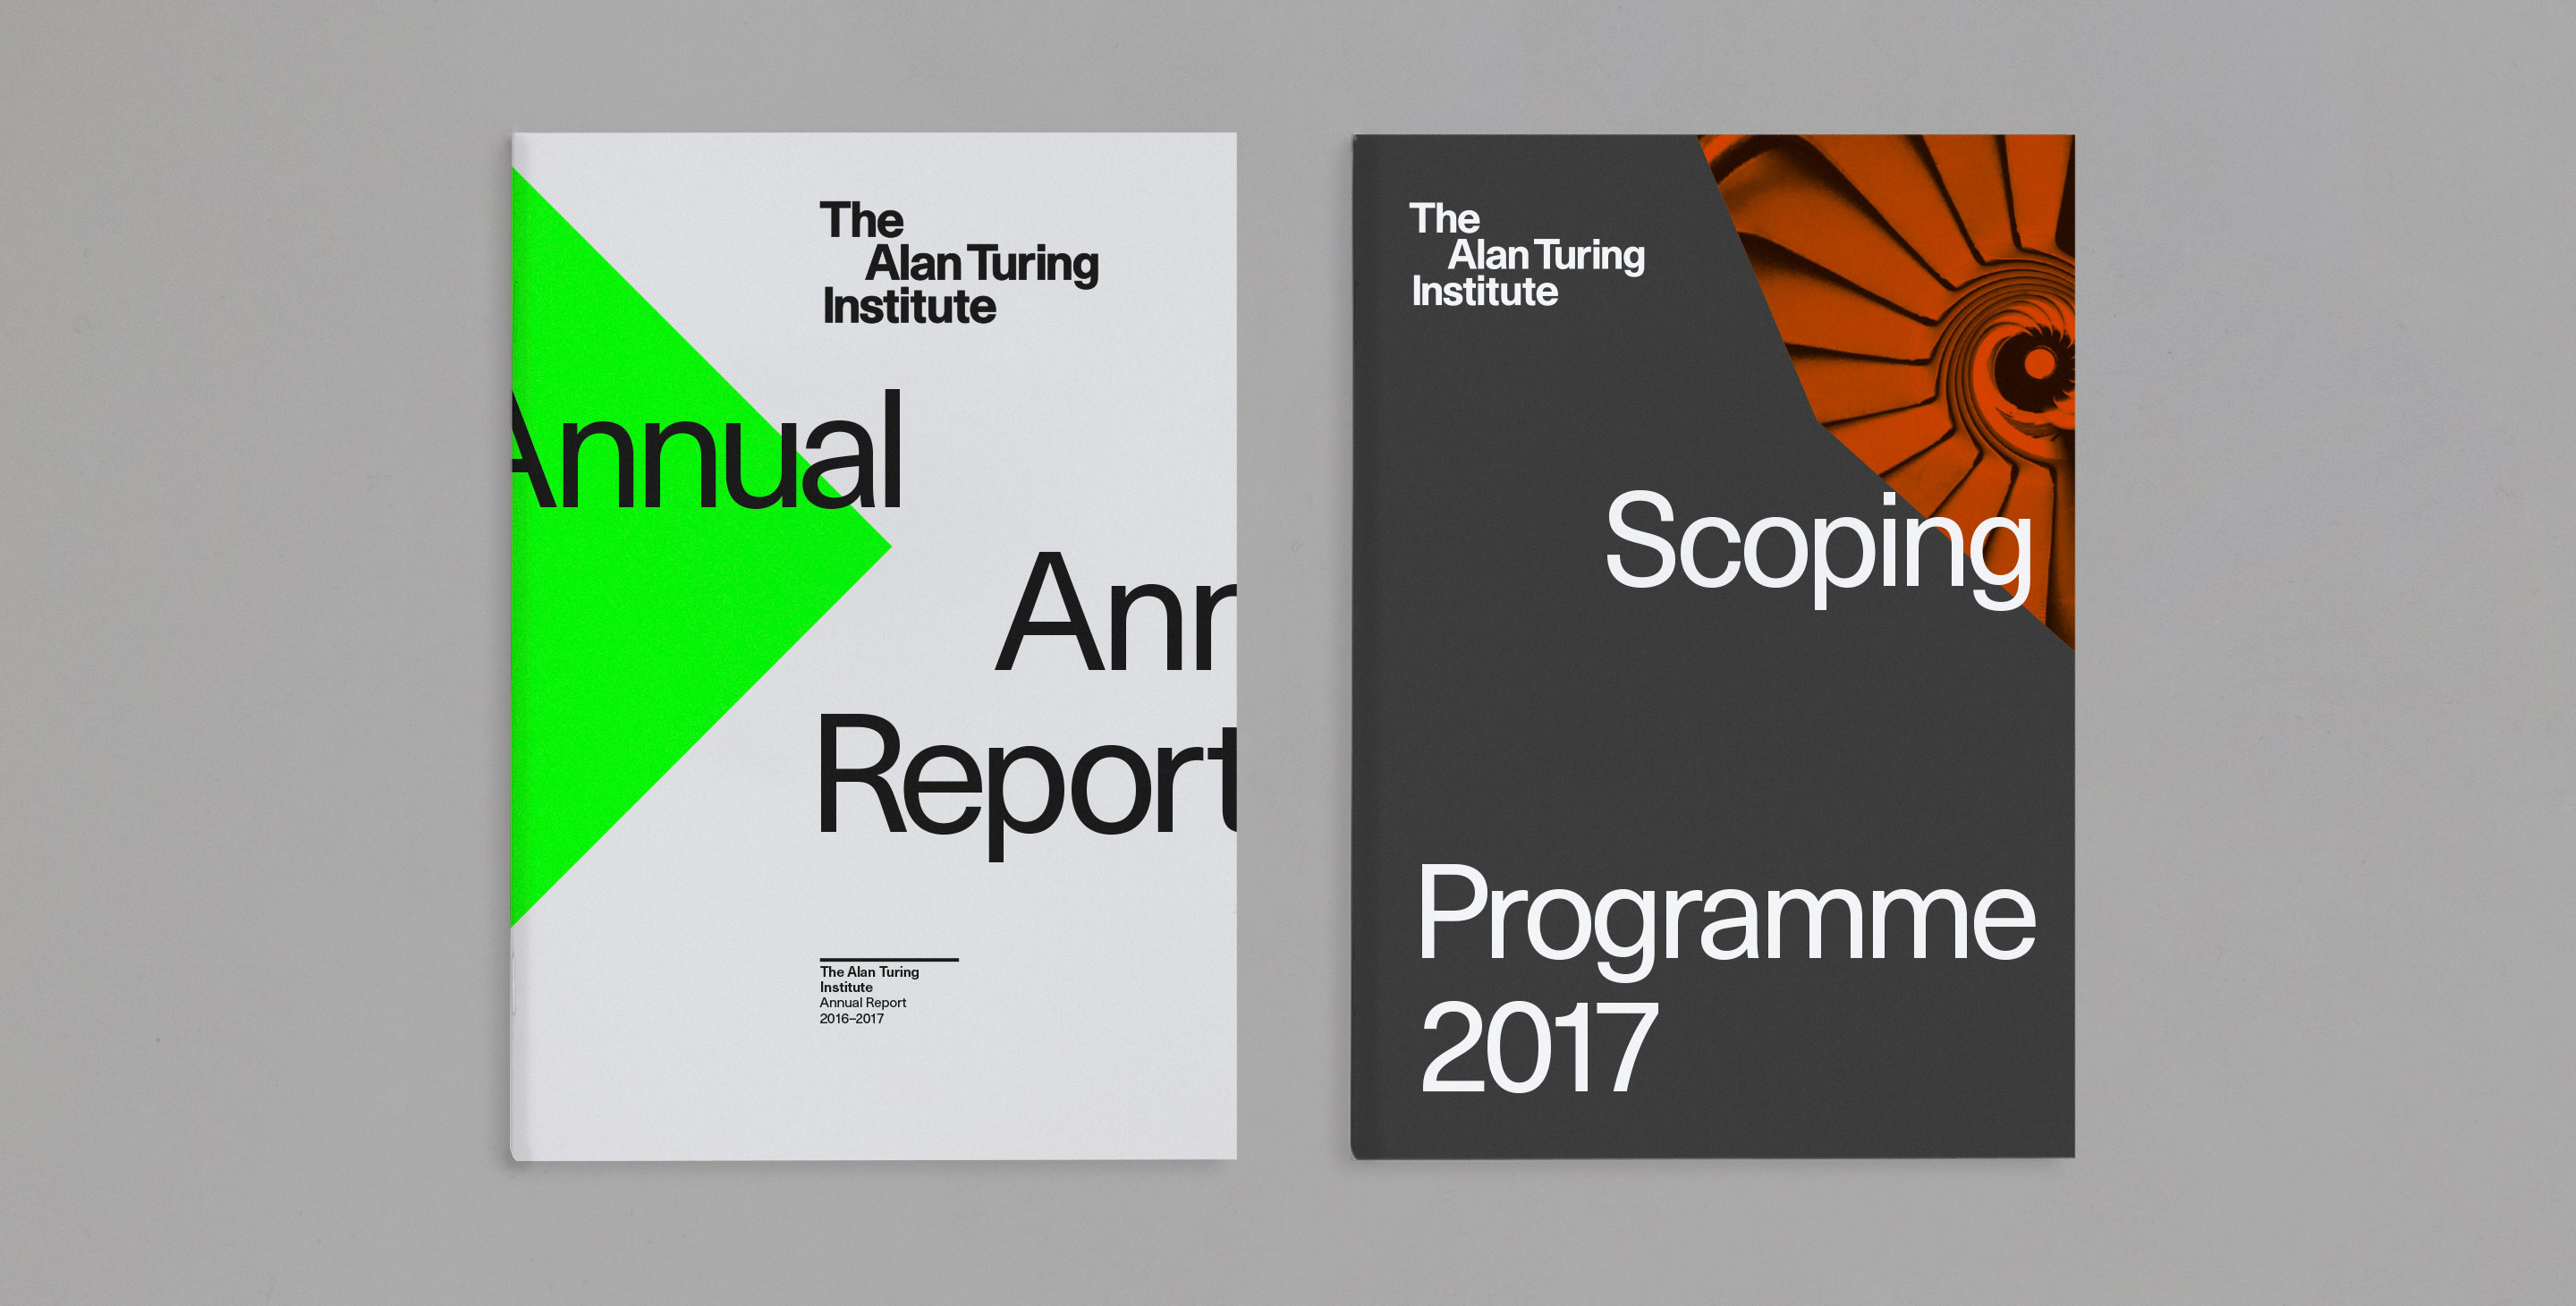 The Alan Turing Institute programmes